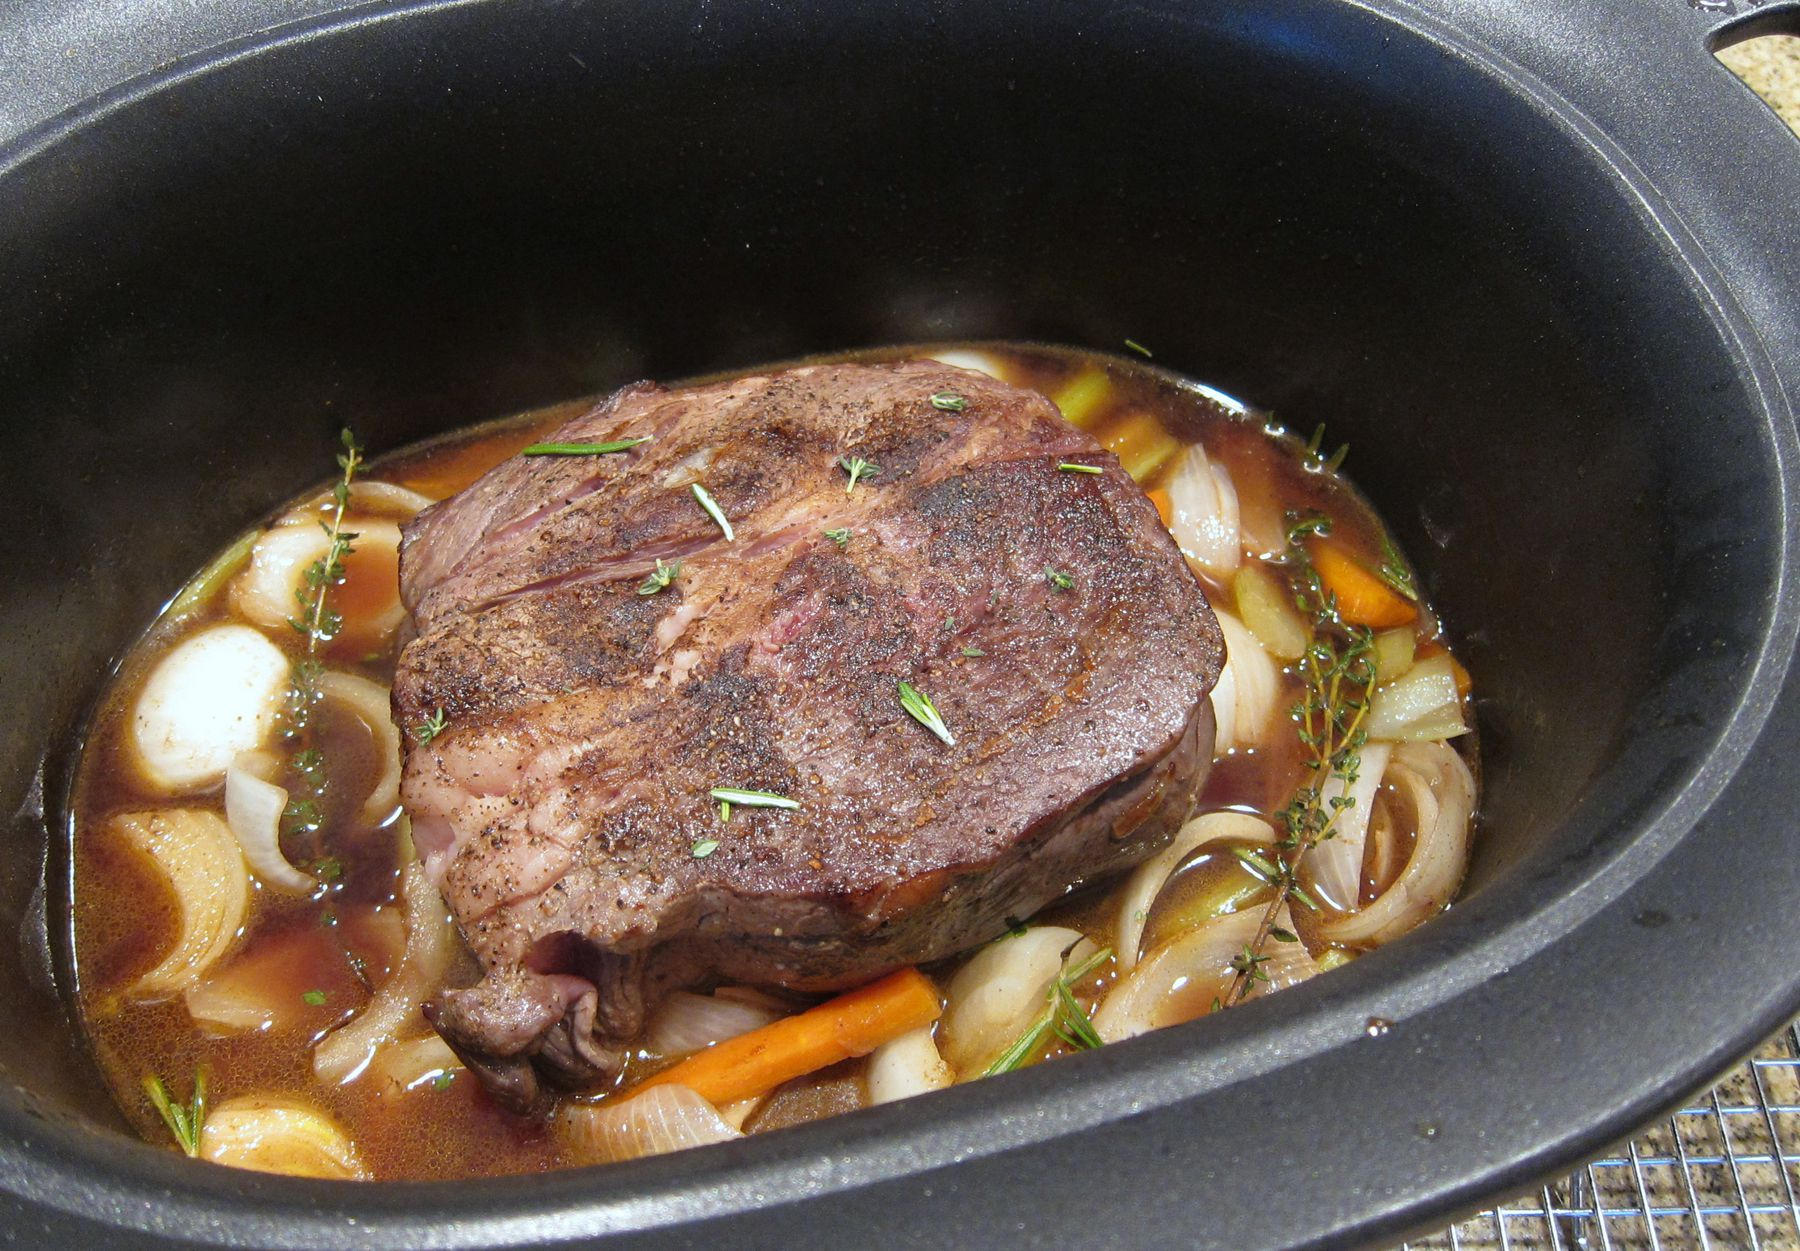 recipe: what temperature to slow cook a roast in the oven [18]